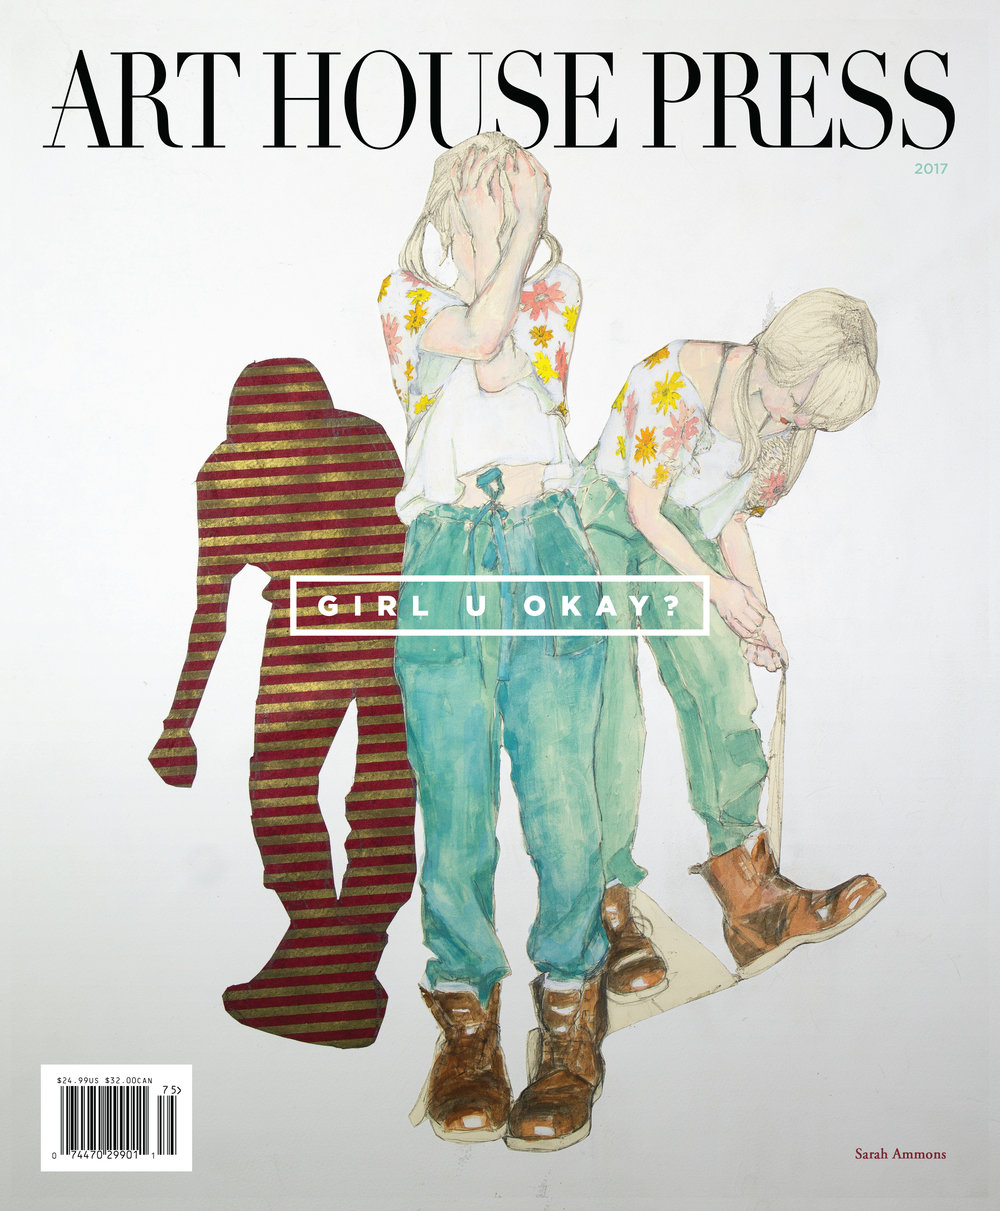 "Issue Three Art House Press - Cover Artist Sarah Ammons ""Call in the Clowns"", Cover Design by Marco Fesyuk"